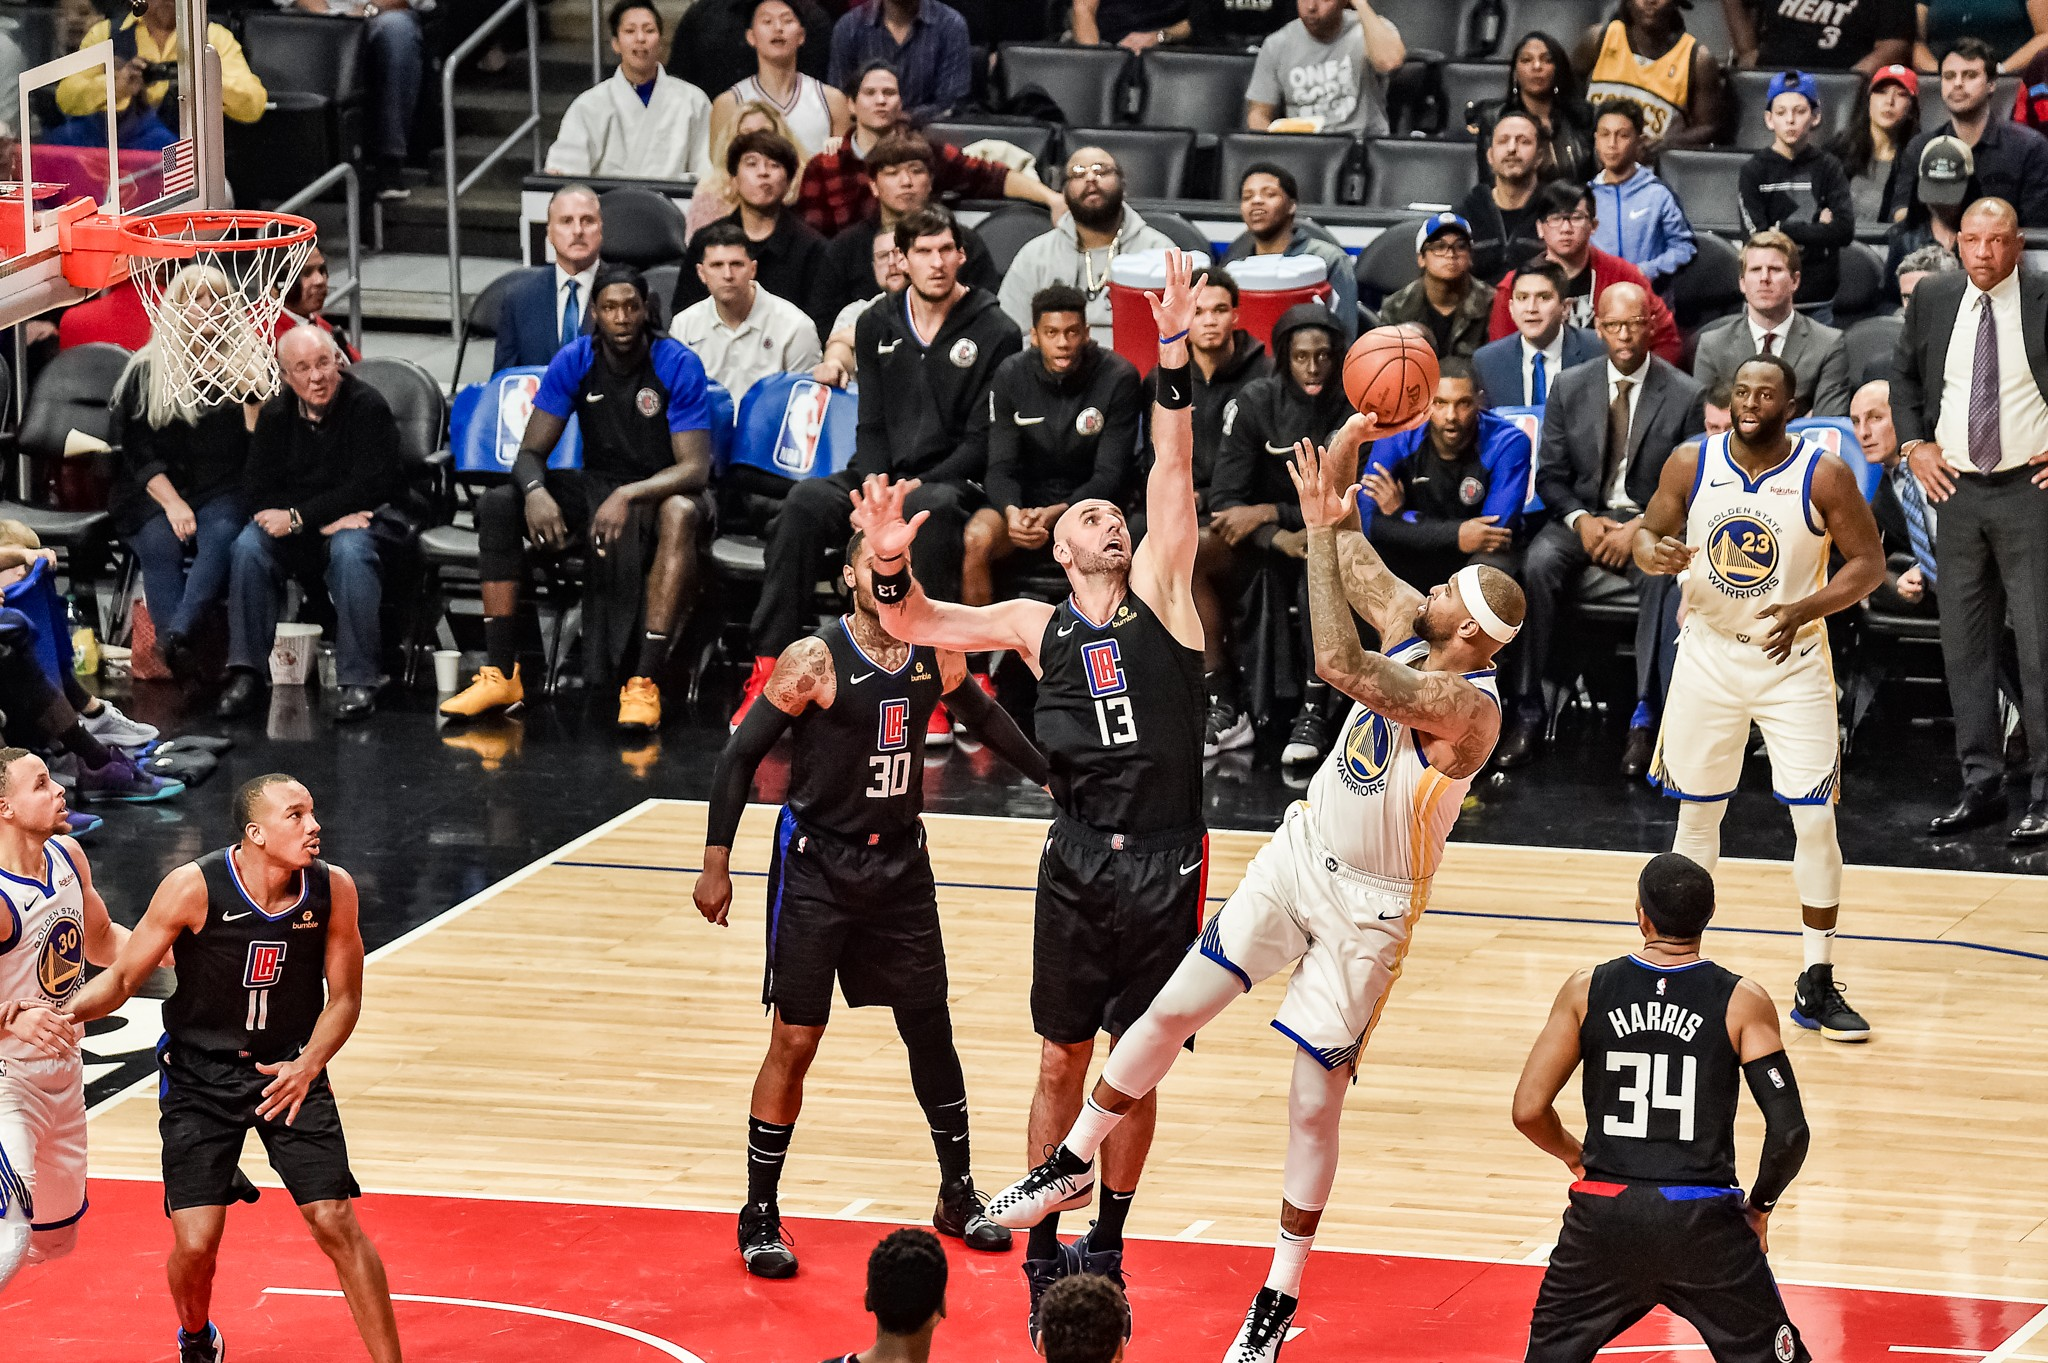 DeMArcus Cousins shooting a jumper against the Los Angeles Clippers